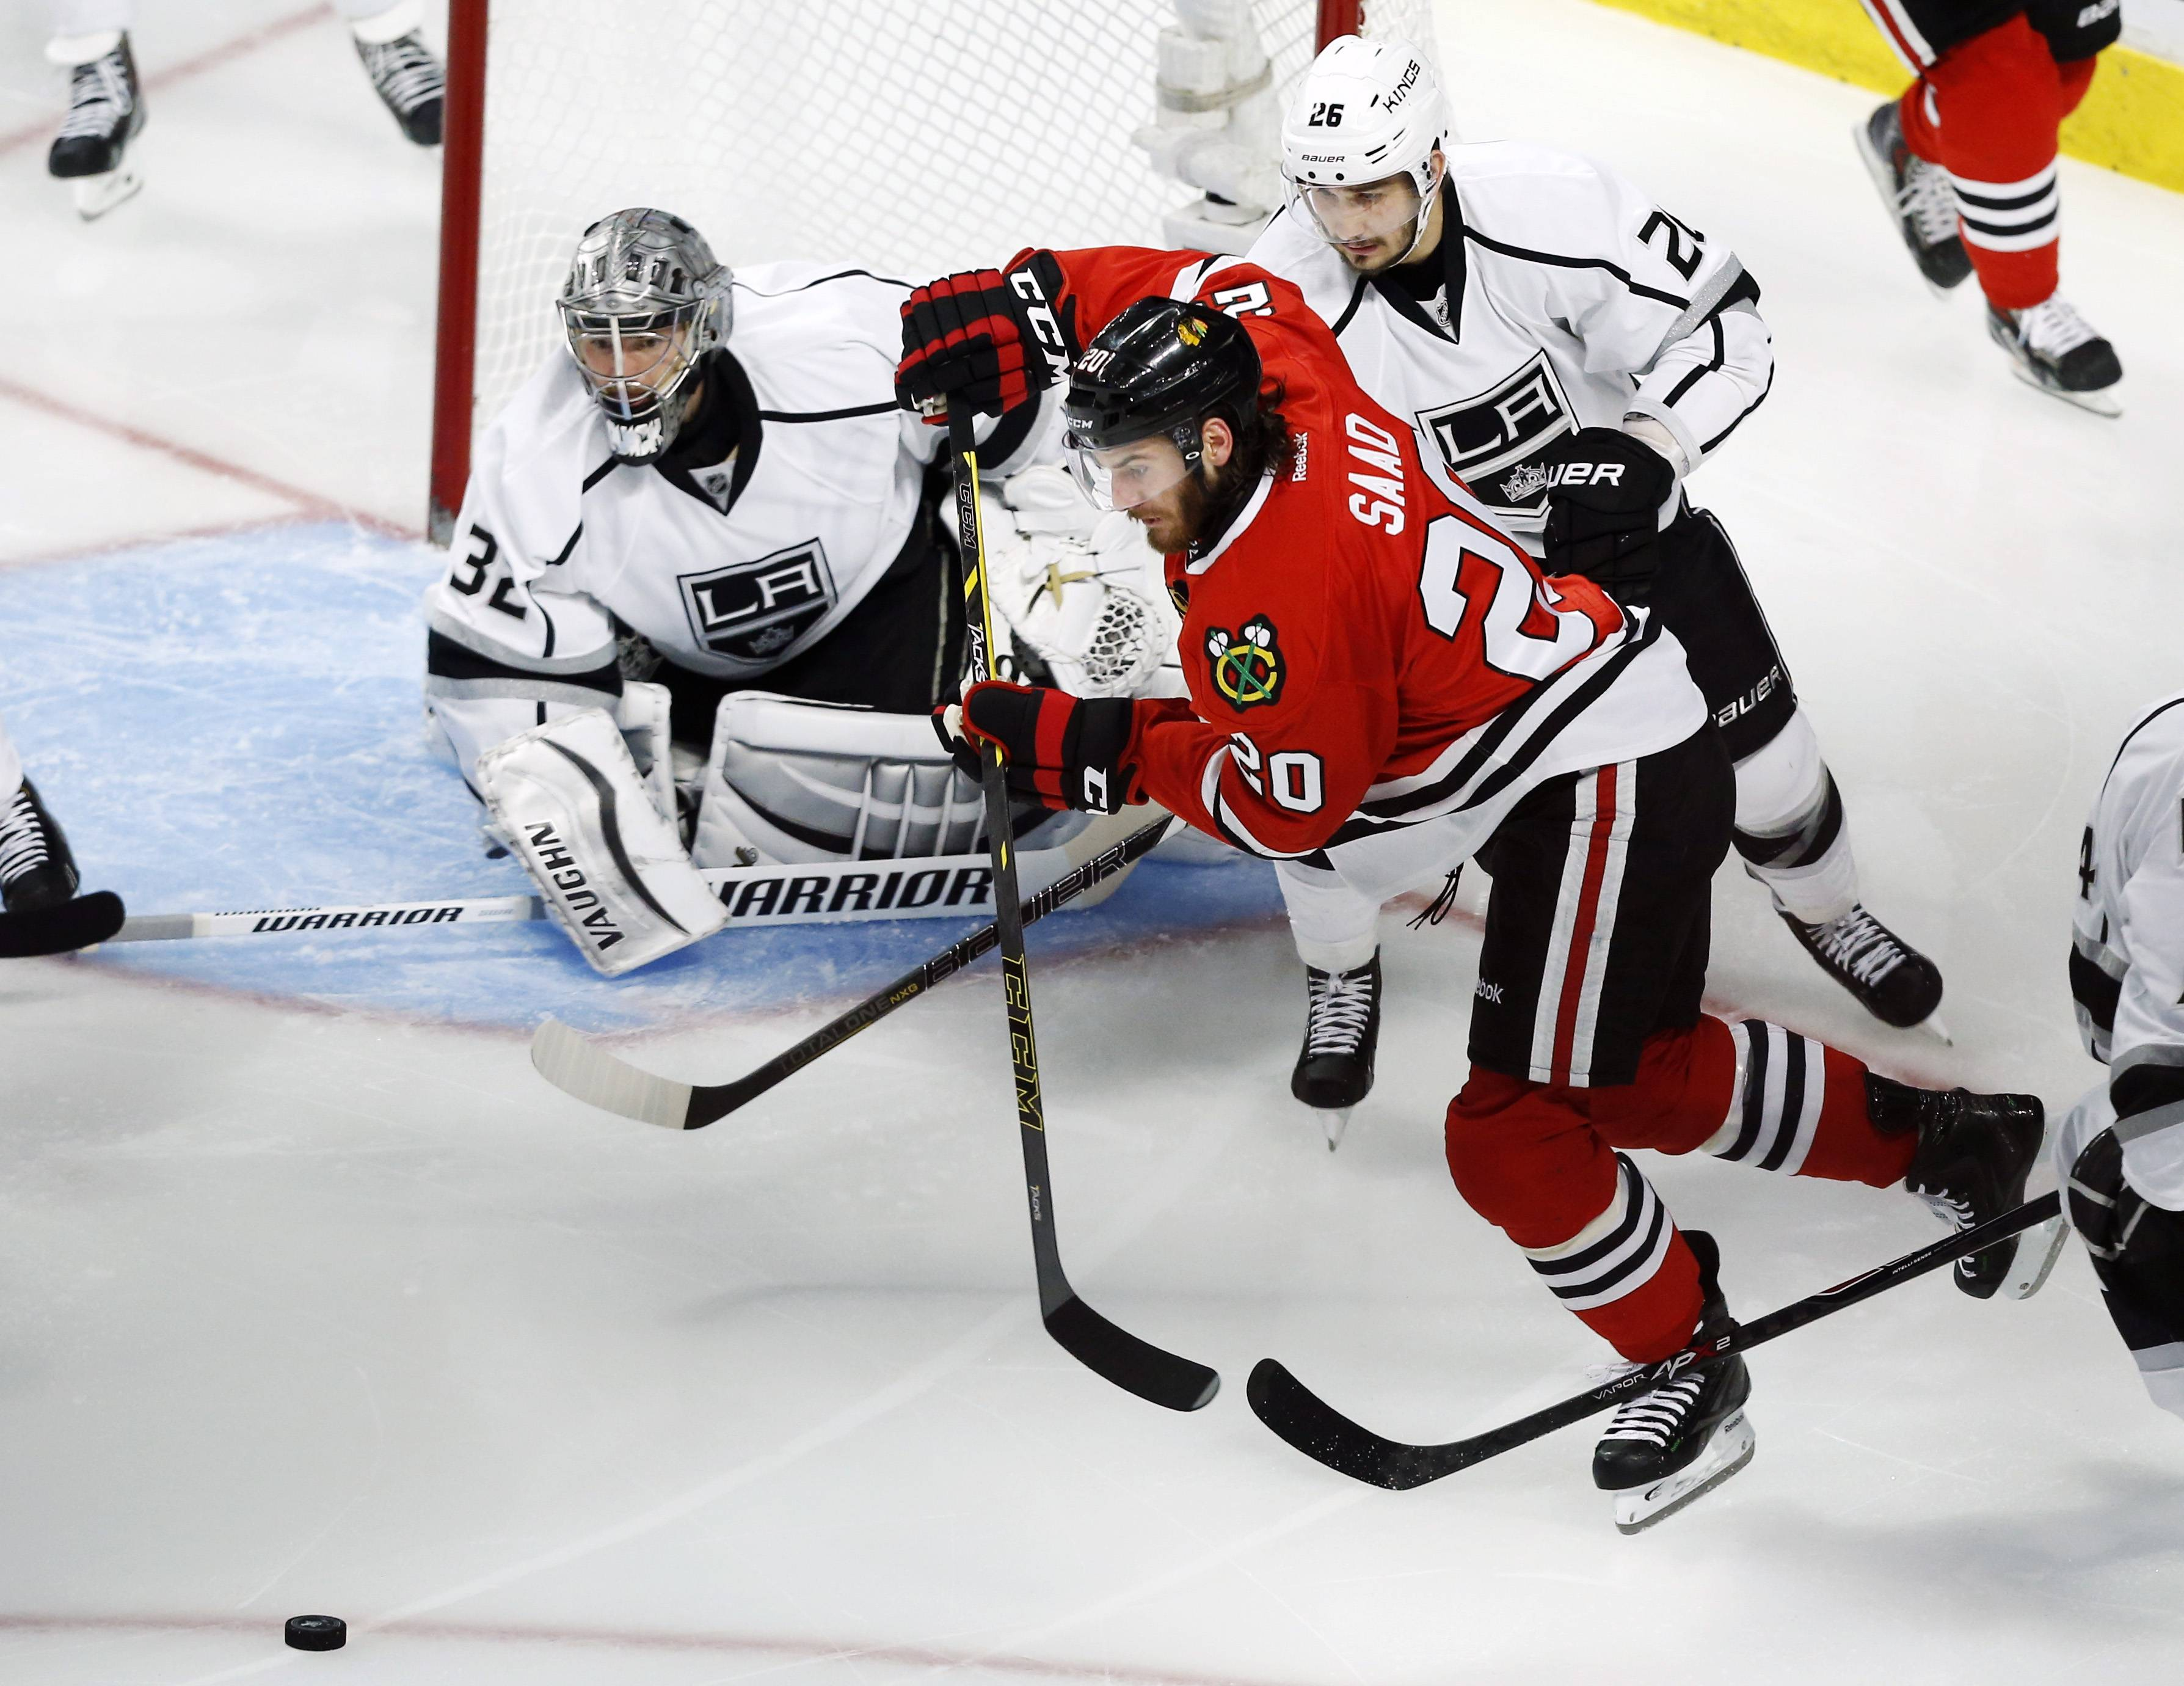 Chicago Blackhawks left wing Brandon Saad (20) goes after the puck against Los Angeles Kings defenseman Slava Voynov (26) during the second period.